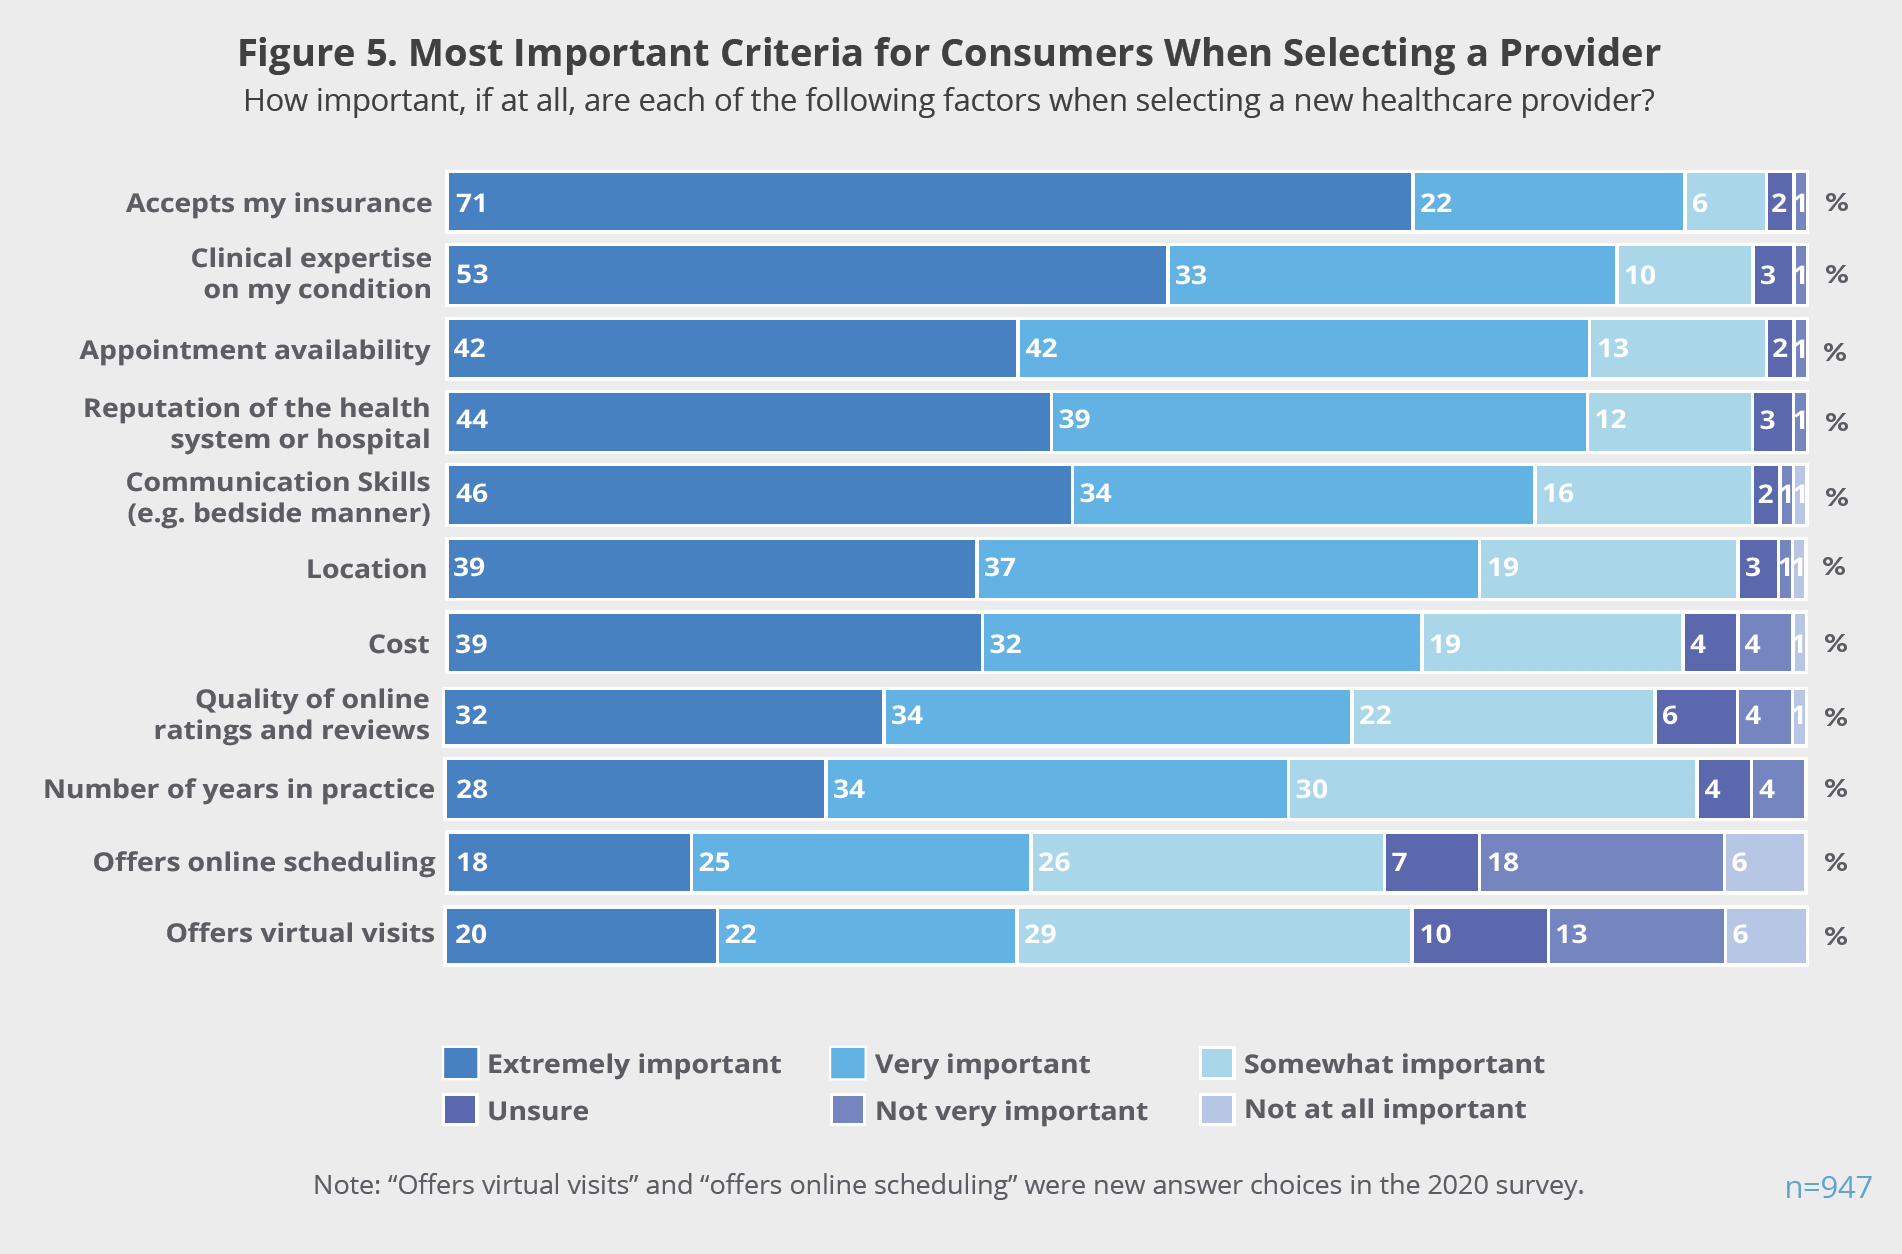 Figure 5. Most Important Criteria for Consumers When Selecting a Provider